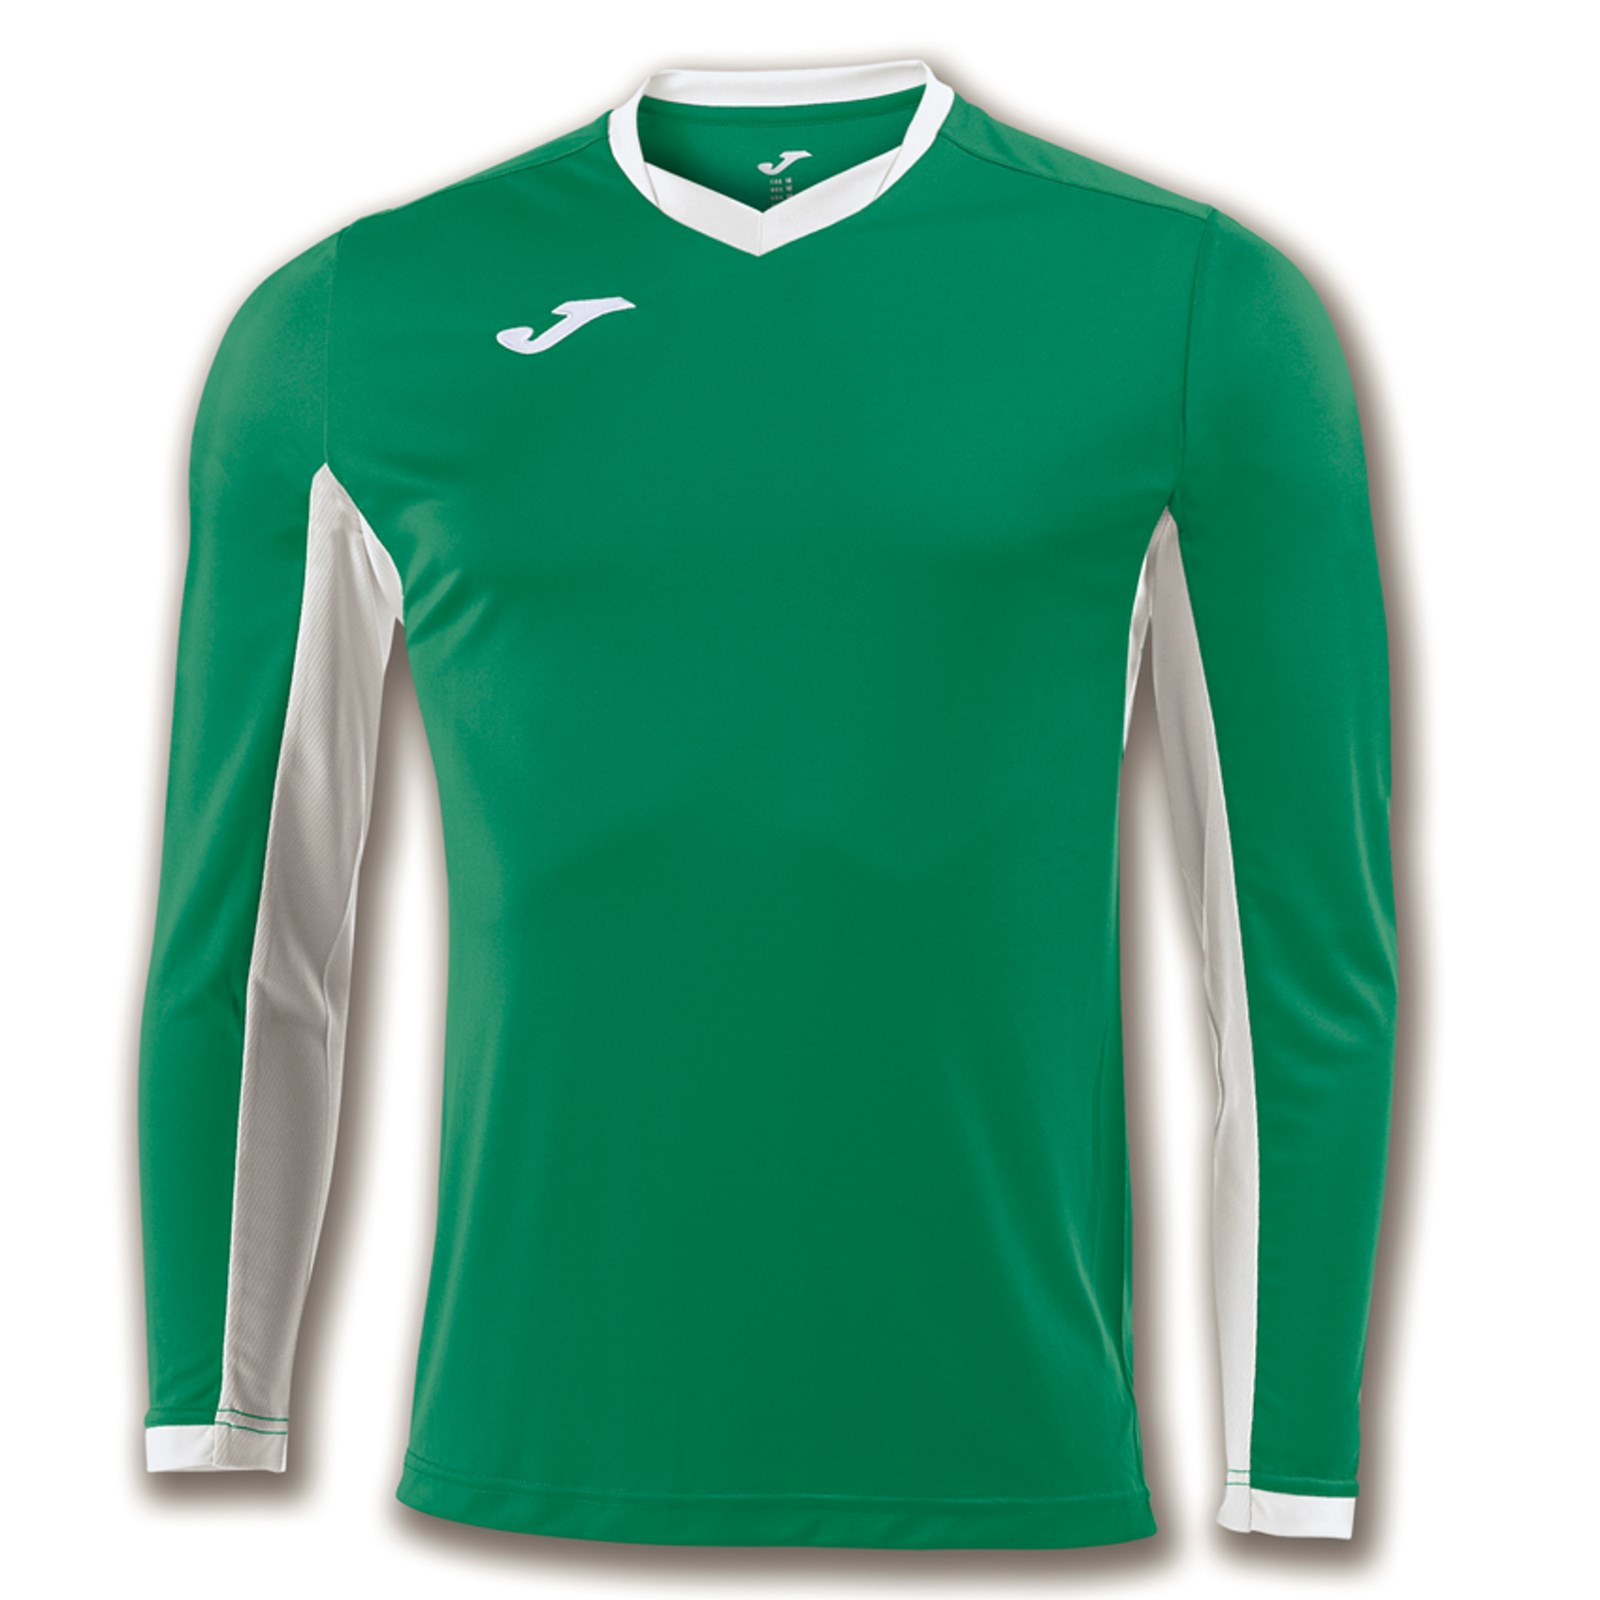 8ed710c0fc51 Joma Champion Long Sleeve Football Shirt Green   Black 43.5-45in ...